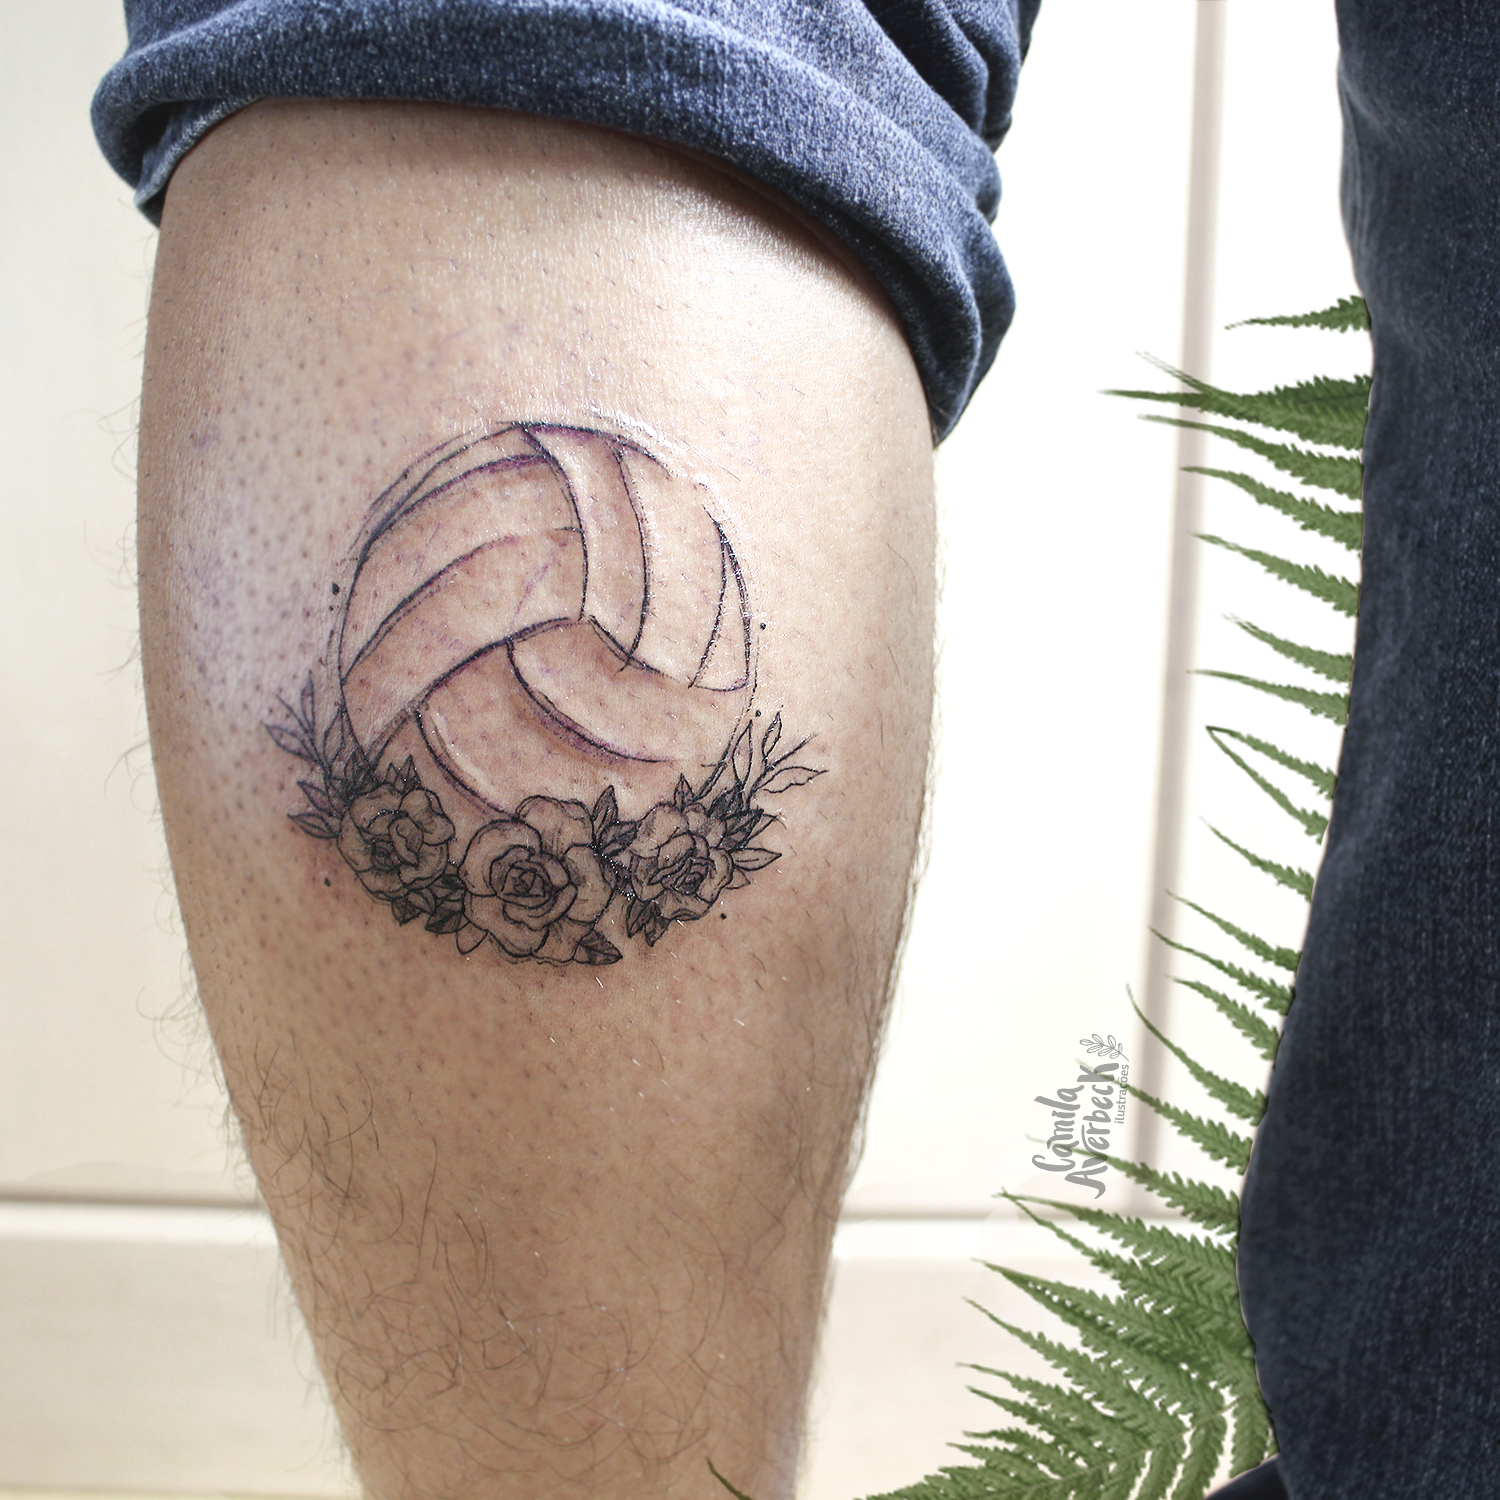 Volleyball Tattoo Tattoo Tatuagem Ink Inkme Inked Volleyball Volei Volleytattoo Rosa Roses Rosetattoo Bota Volleyball Tattoos Small Tattoos Tattoos